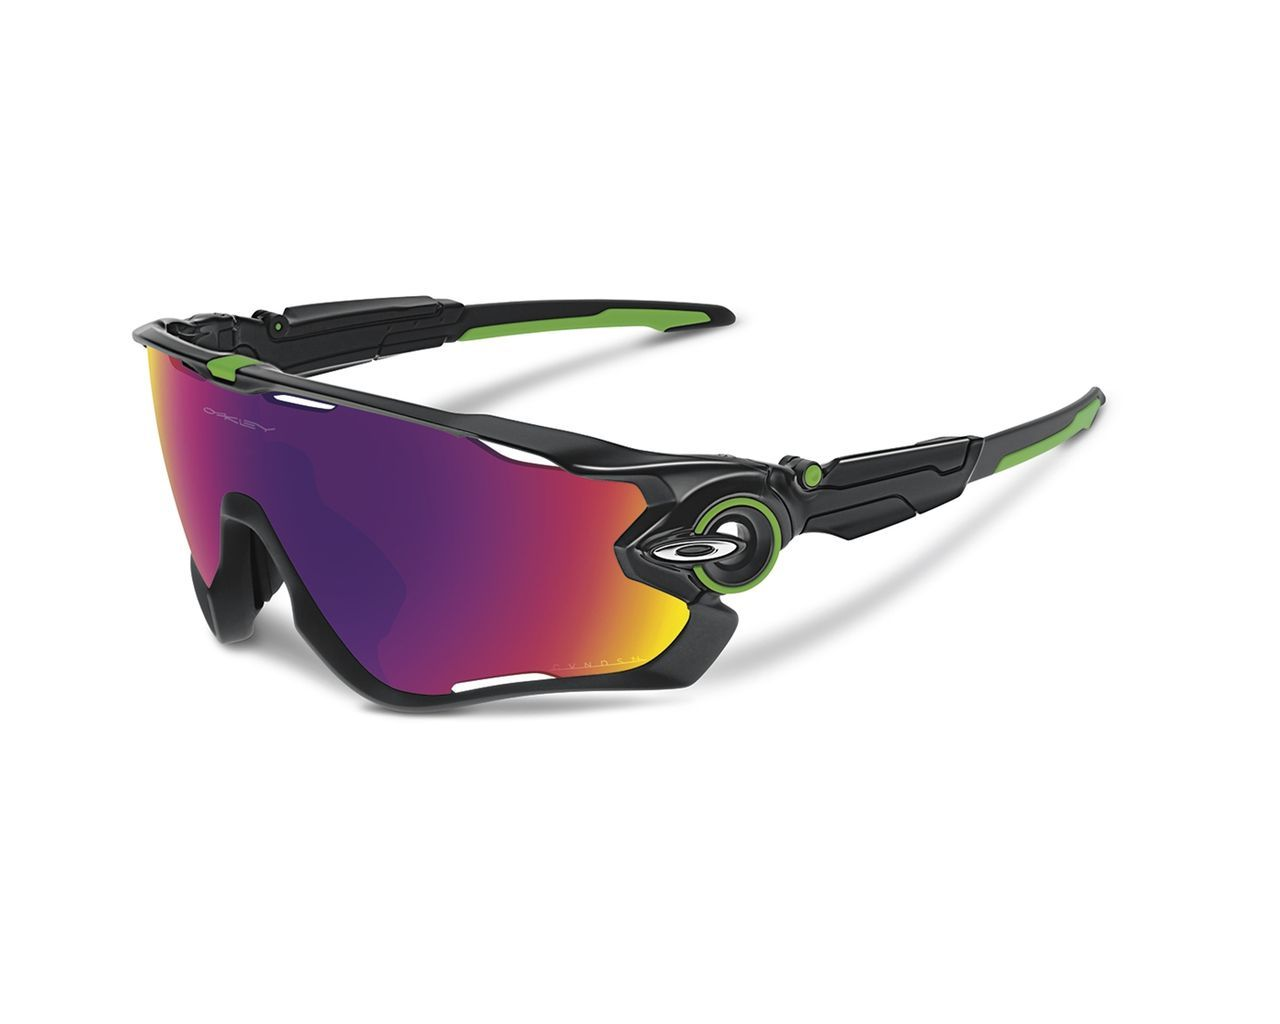 18cd835f2c Buy Oakley Jawbreaker Sunglasses - Mark Cavendish Edition Prizm Road from  Price Match + Free Click   Collect   home delivery.